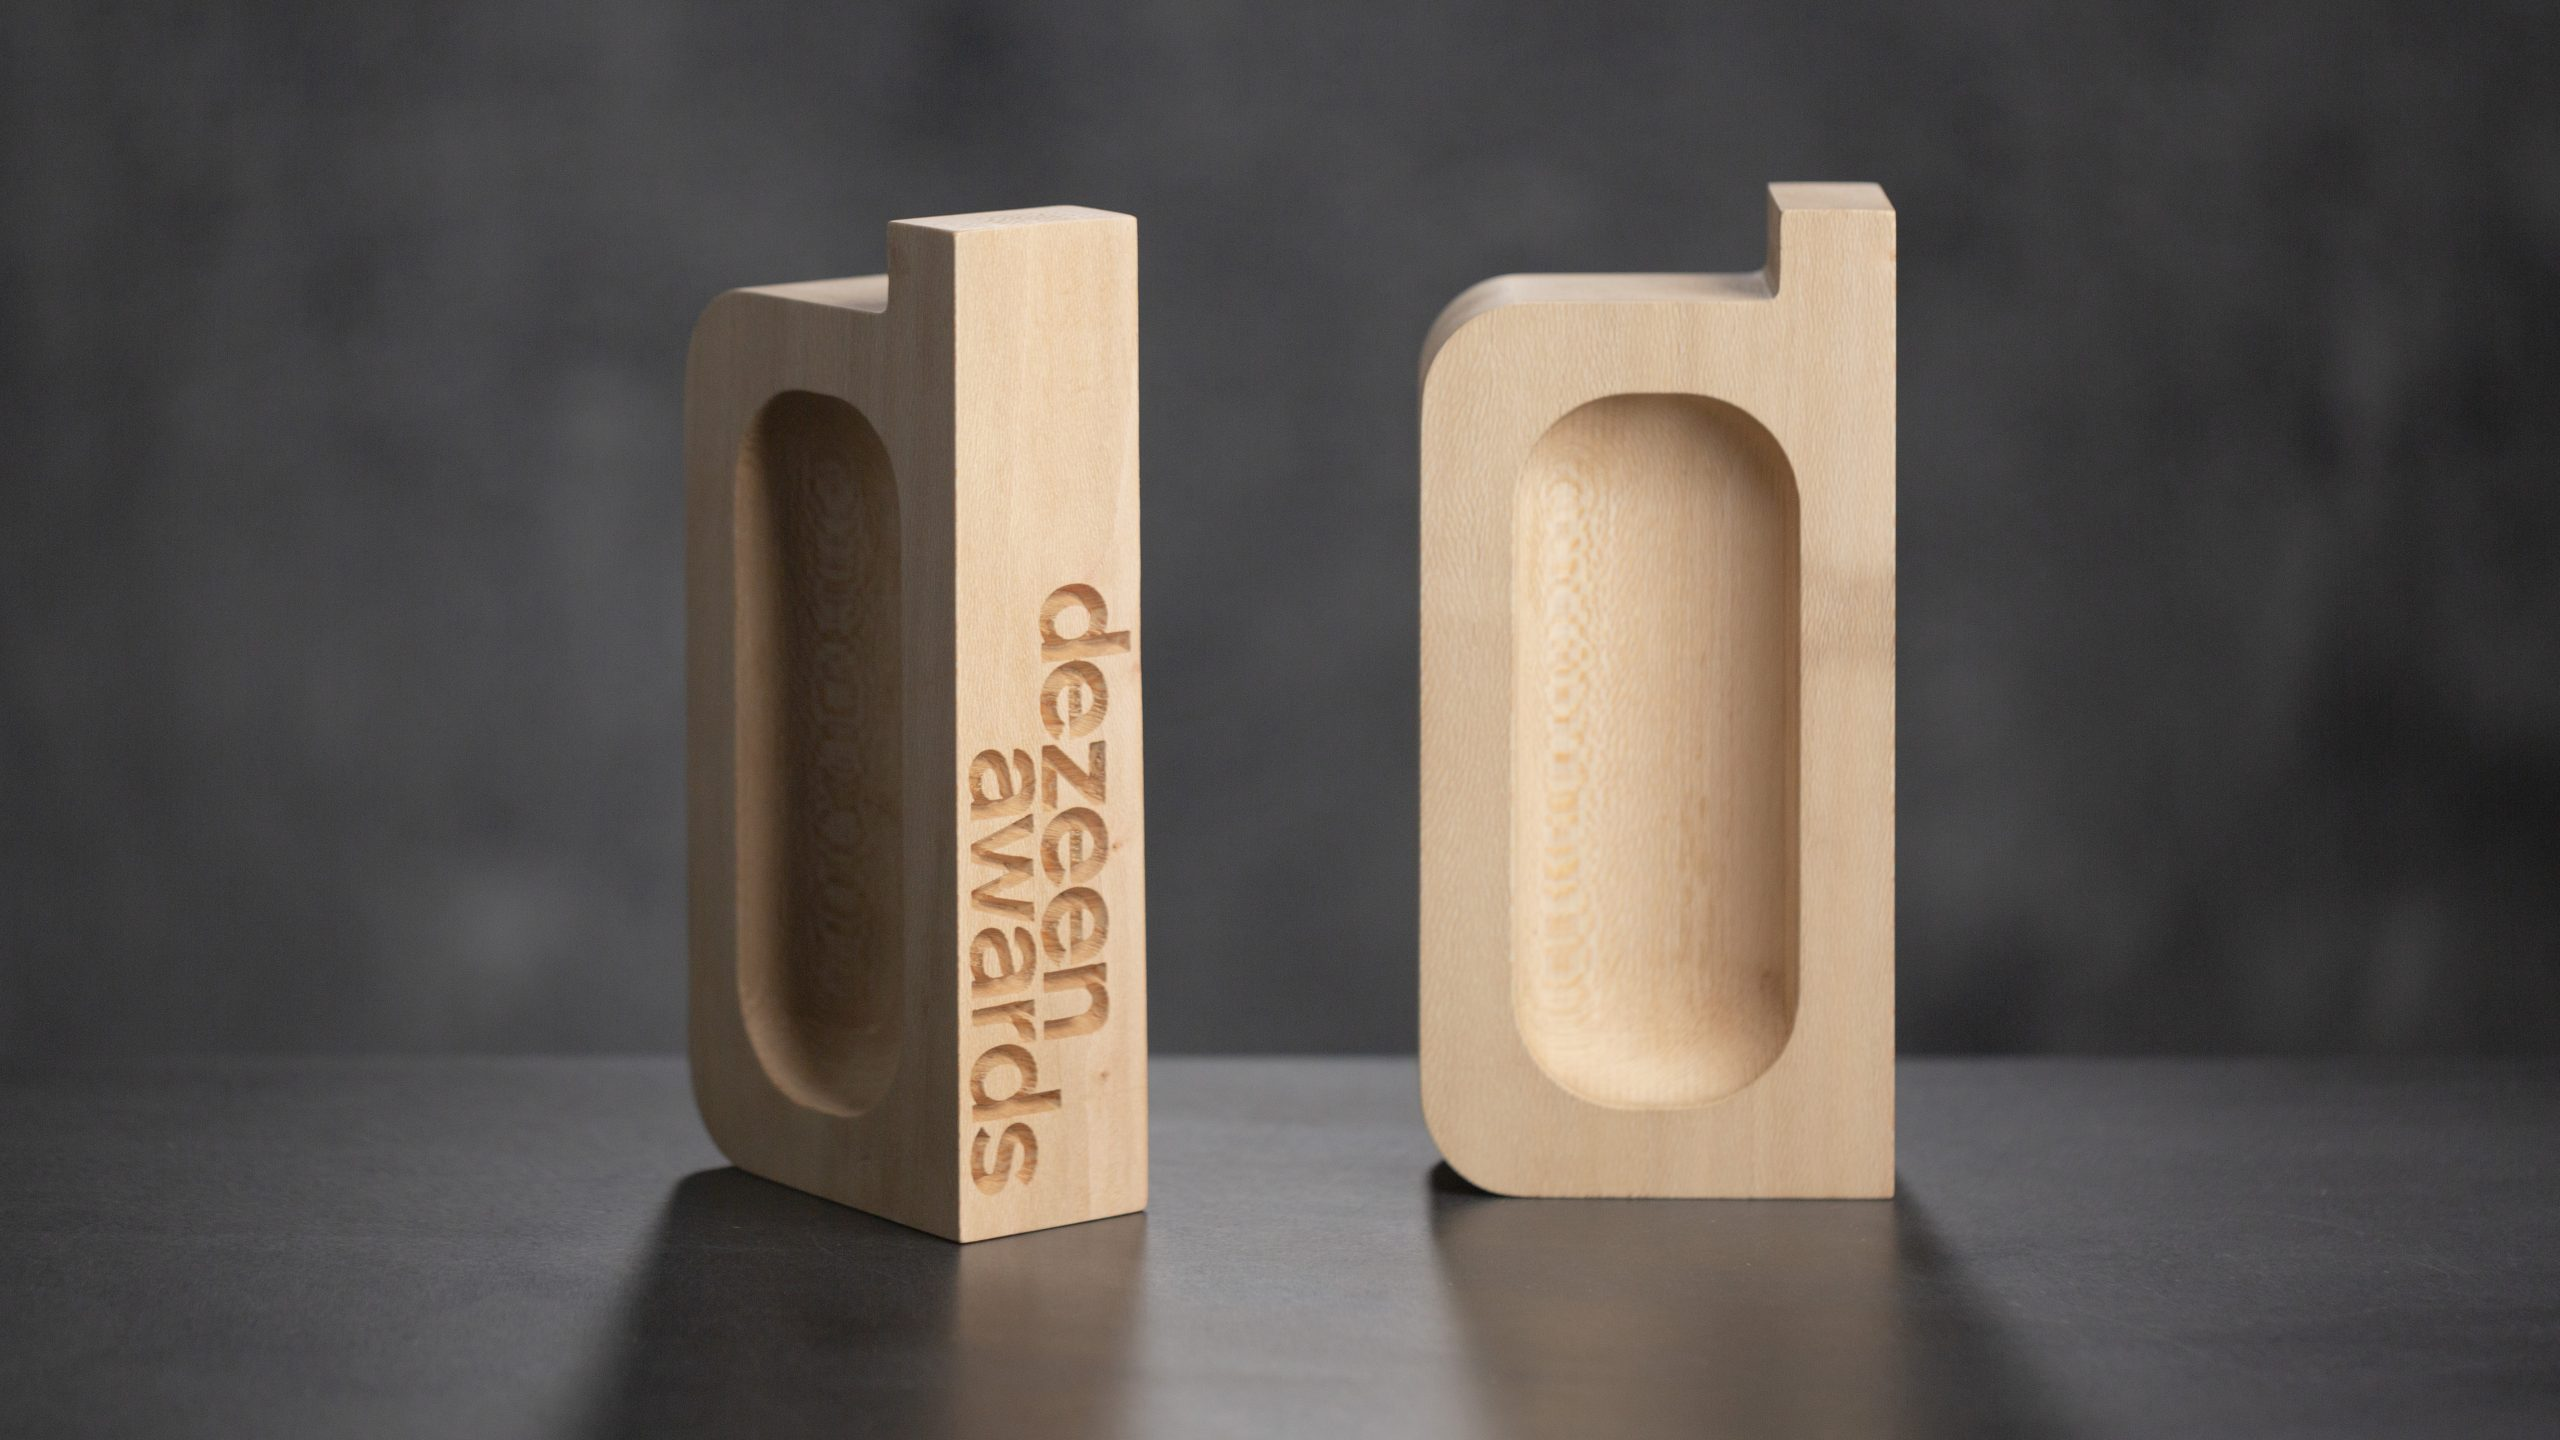 Dezeen Awards trophy